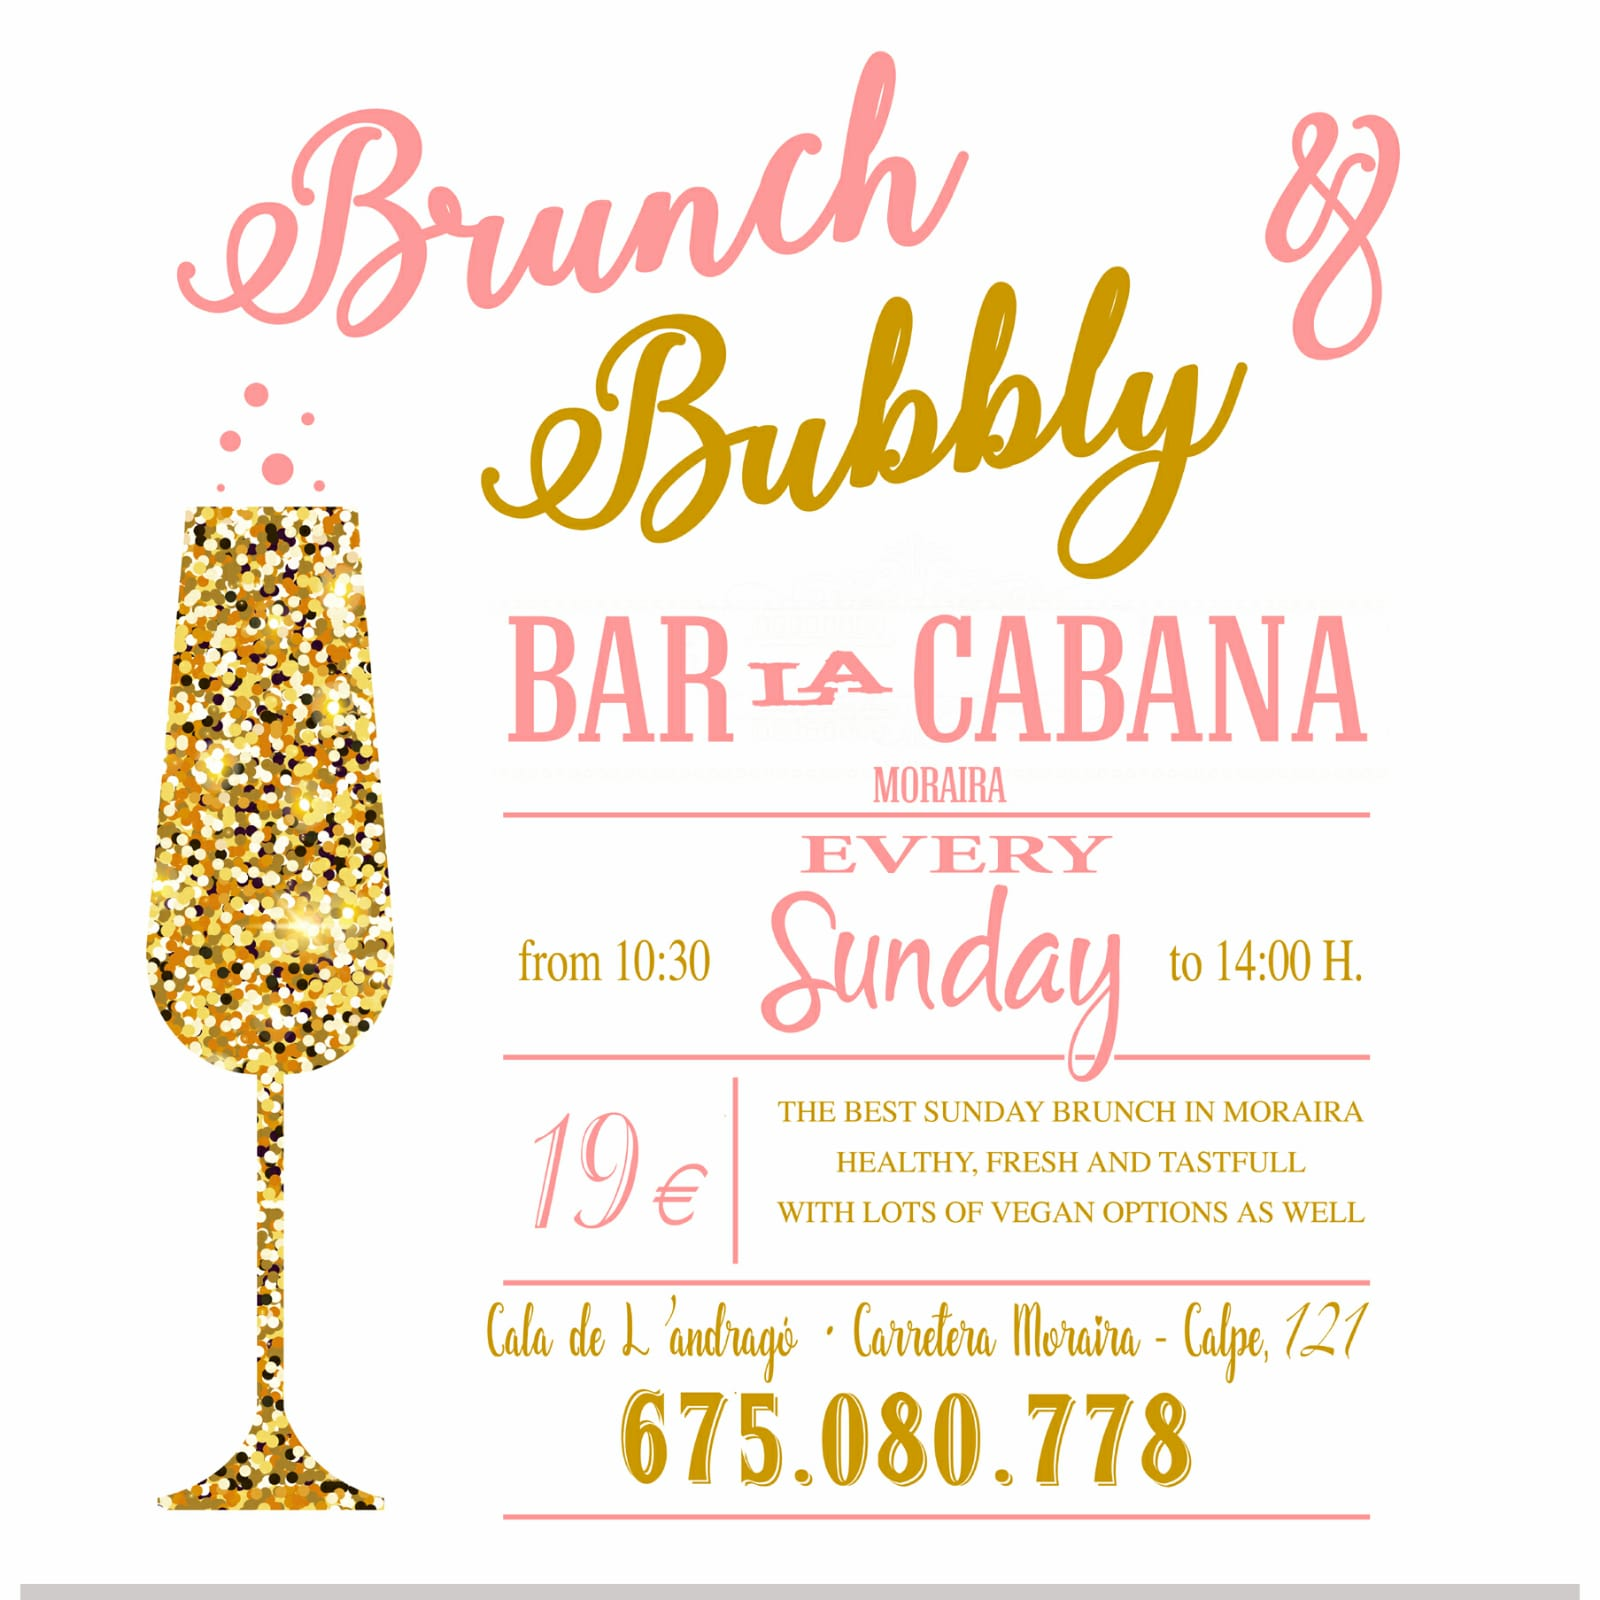 Come and enjoy our Sunday Brunch Buffet. - The best in Moraira